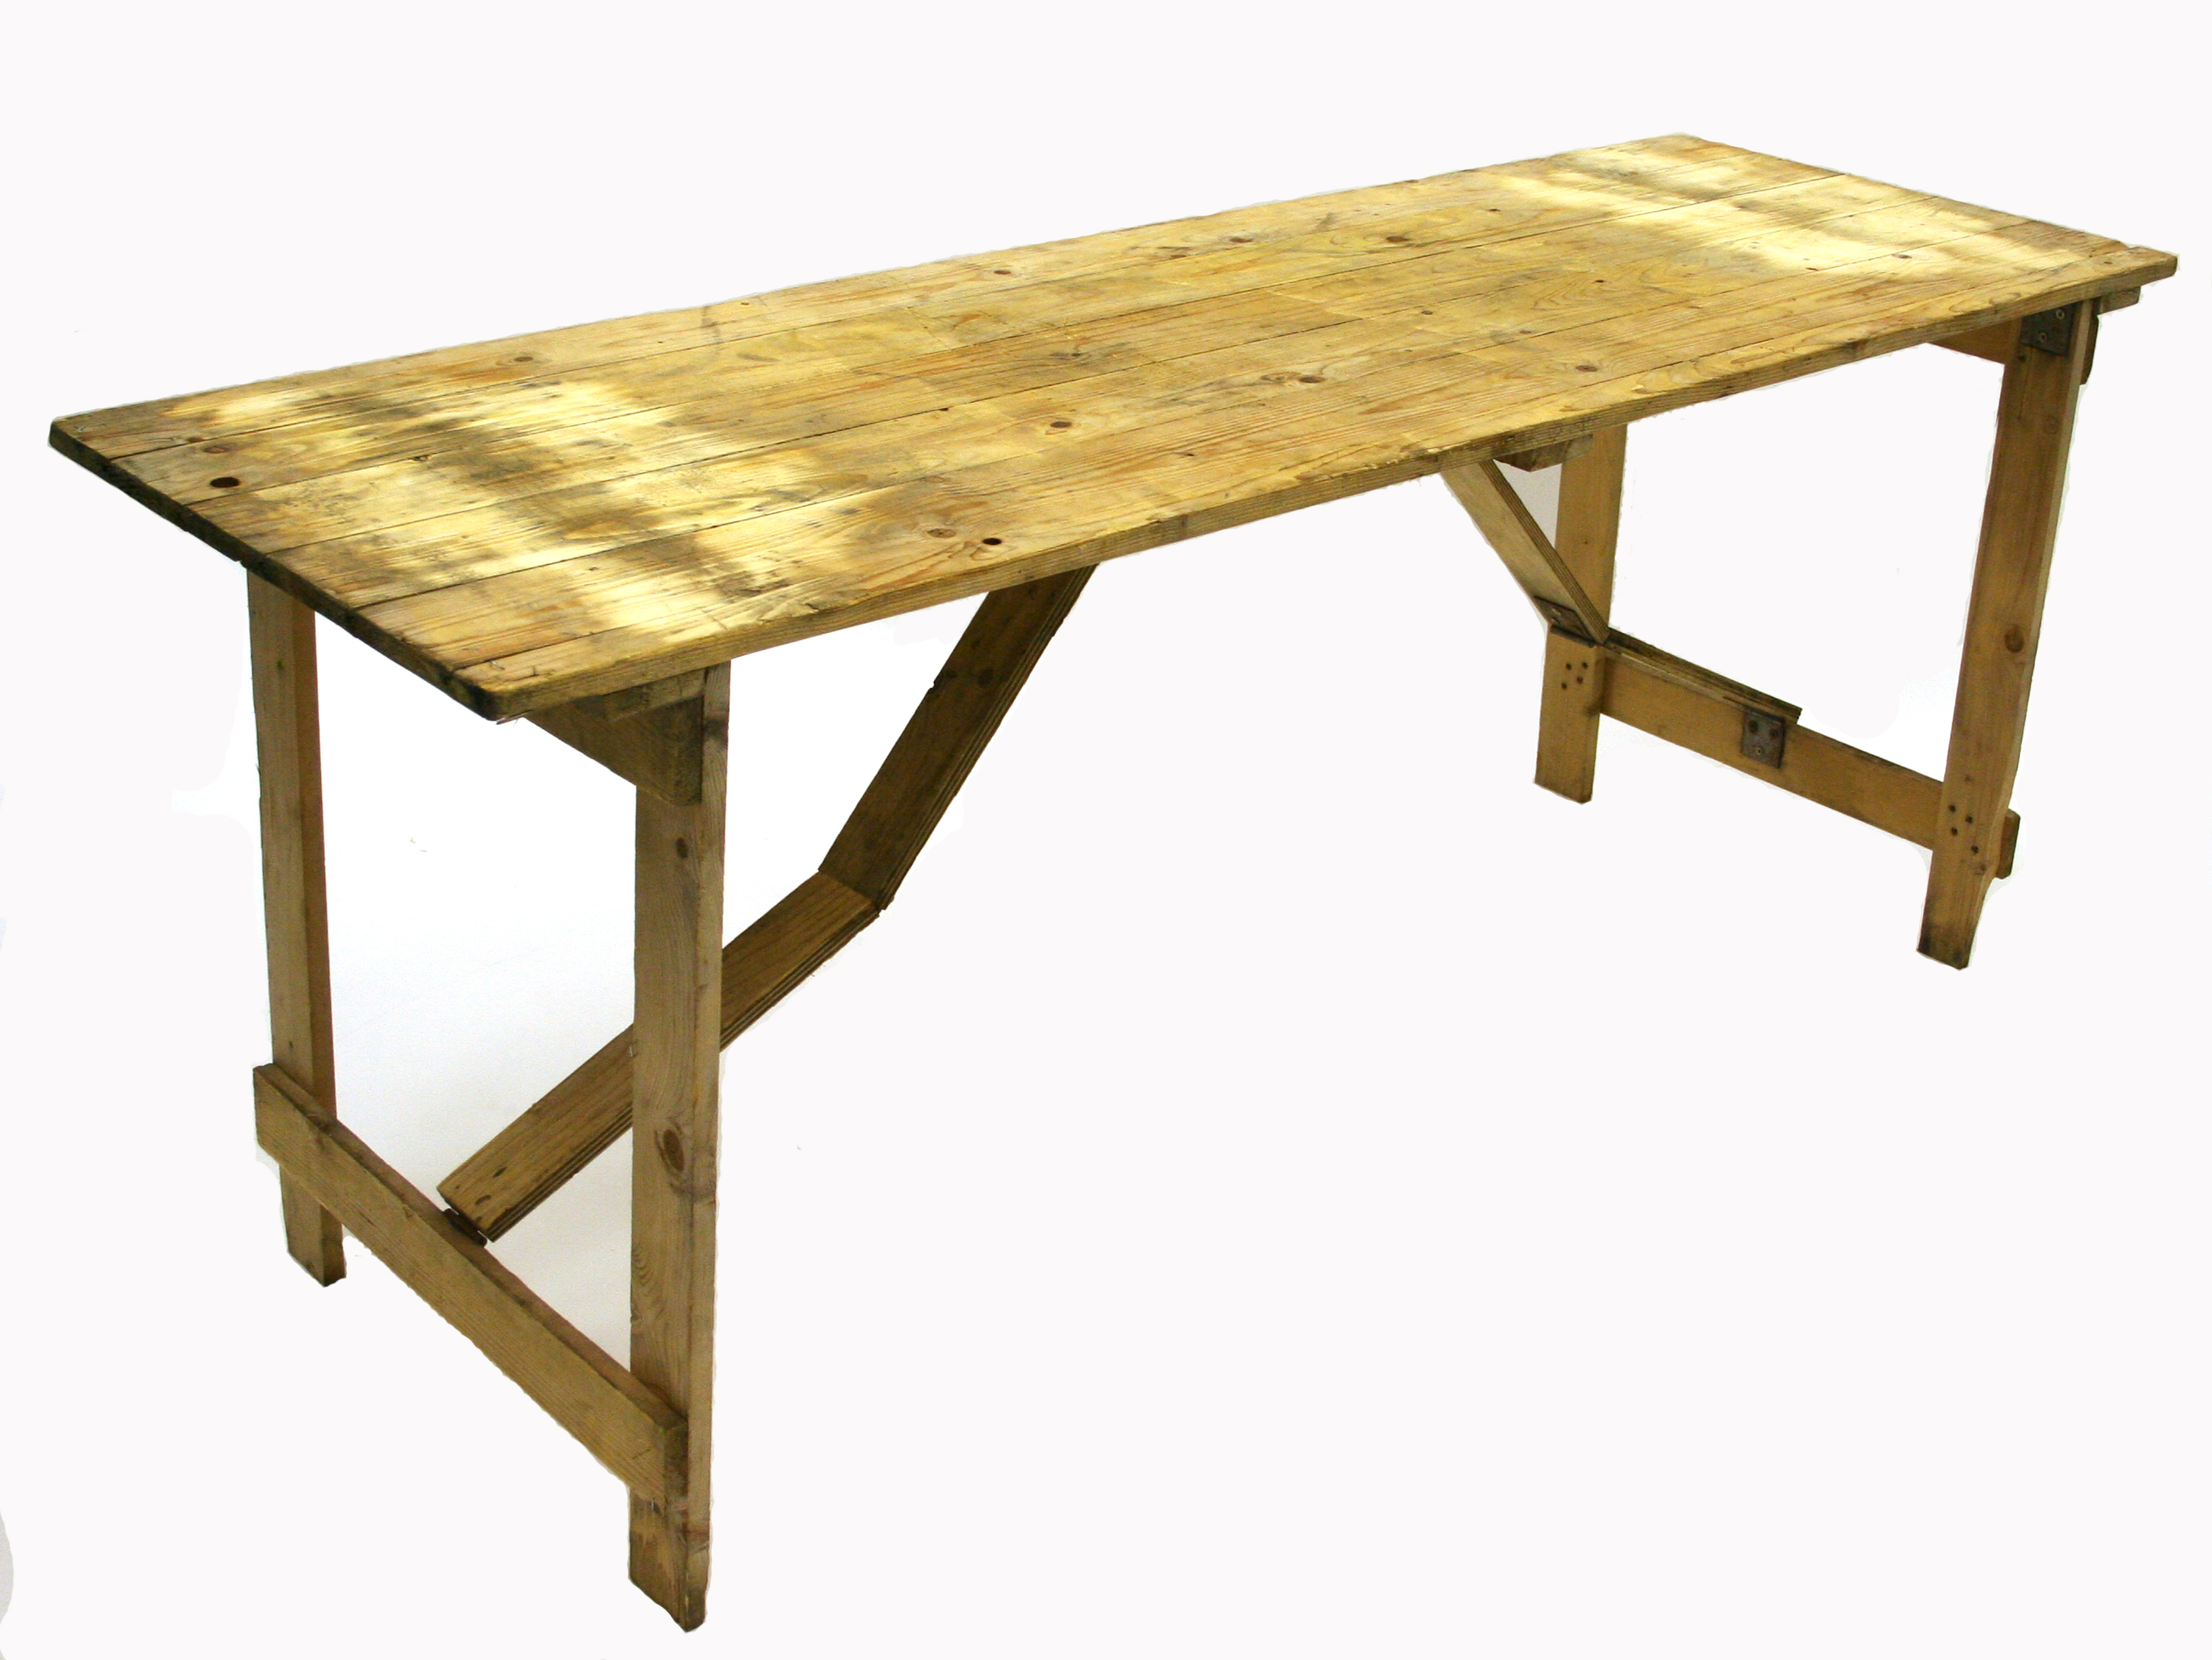 Wooden trestle table measuring 6' x 2' - BE Event Hire